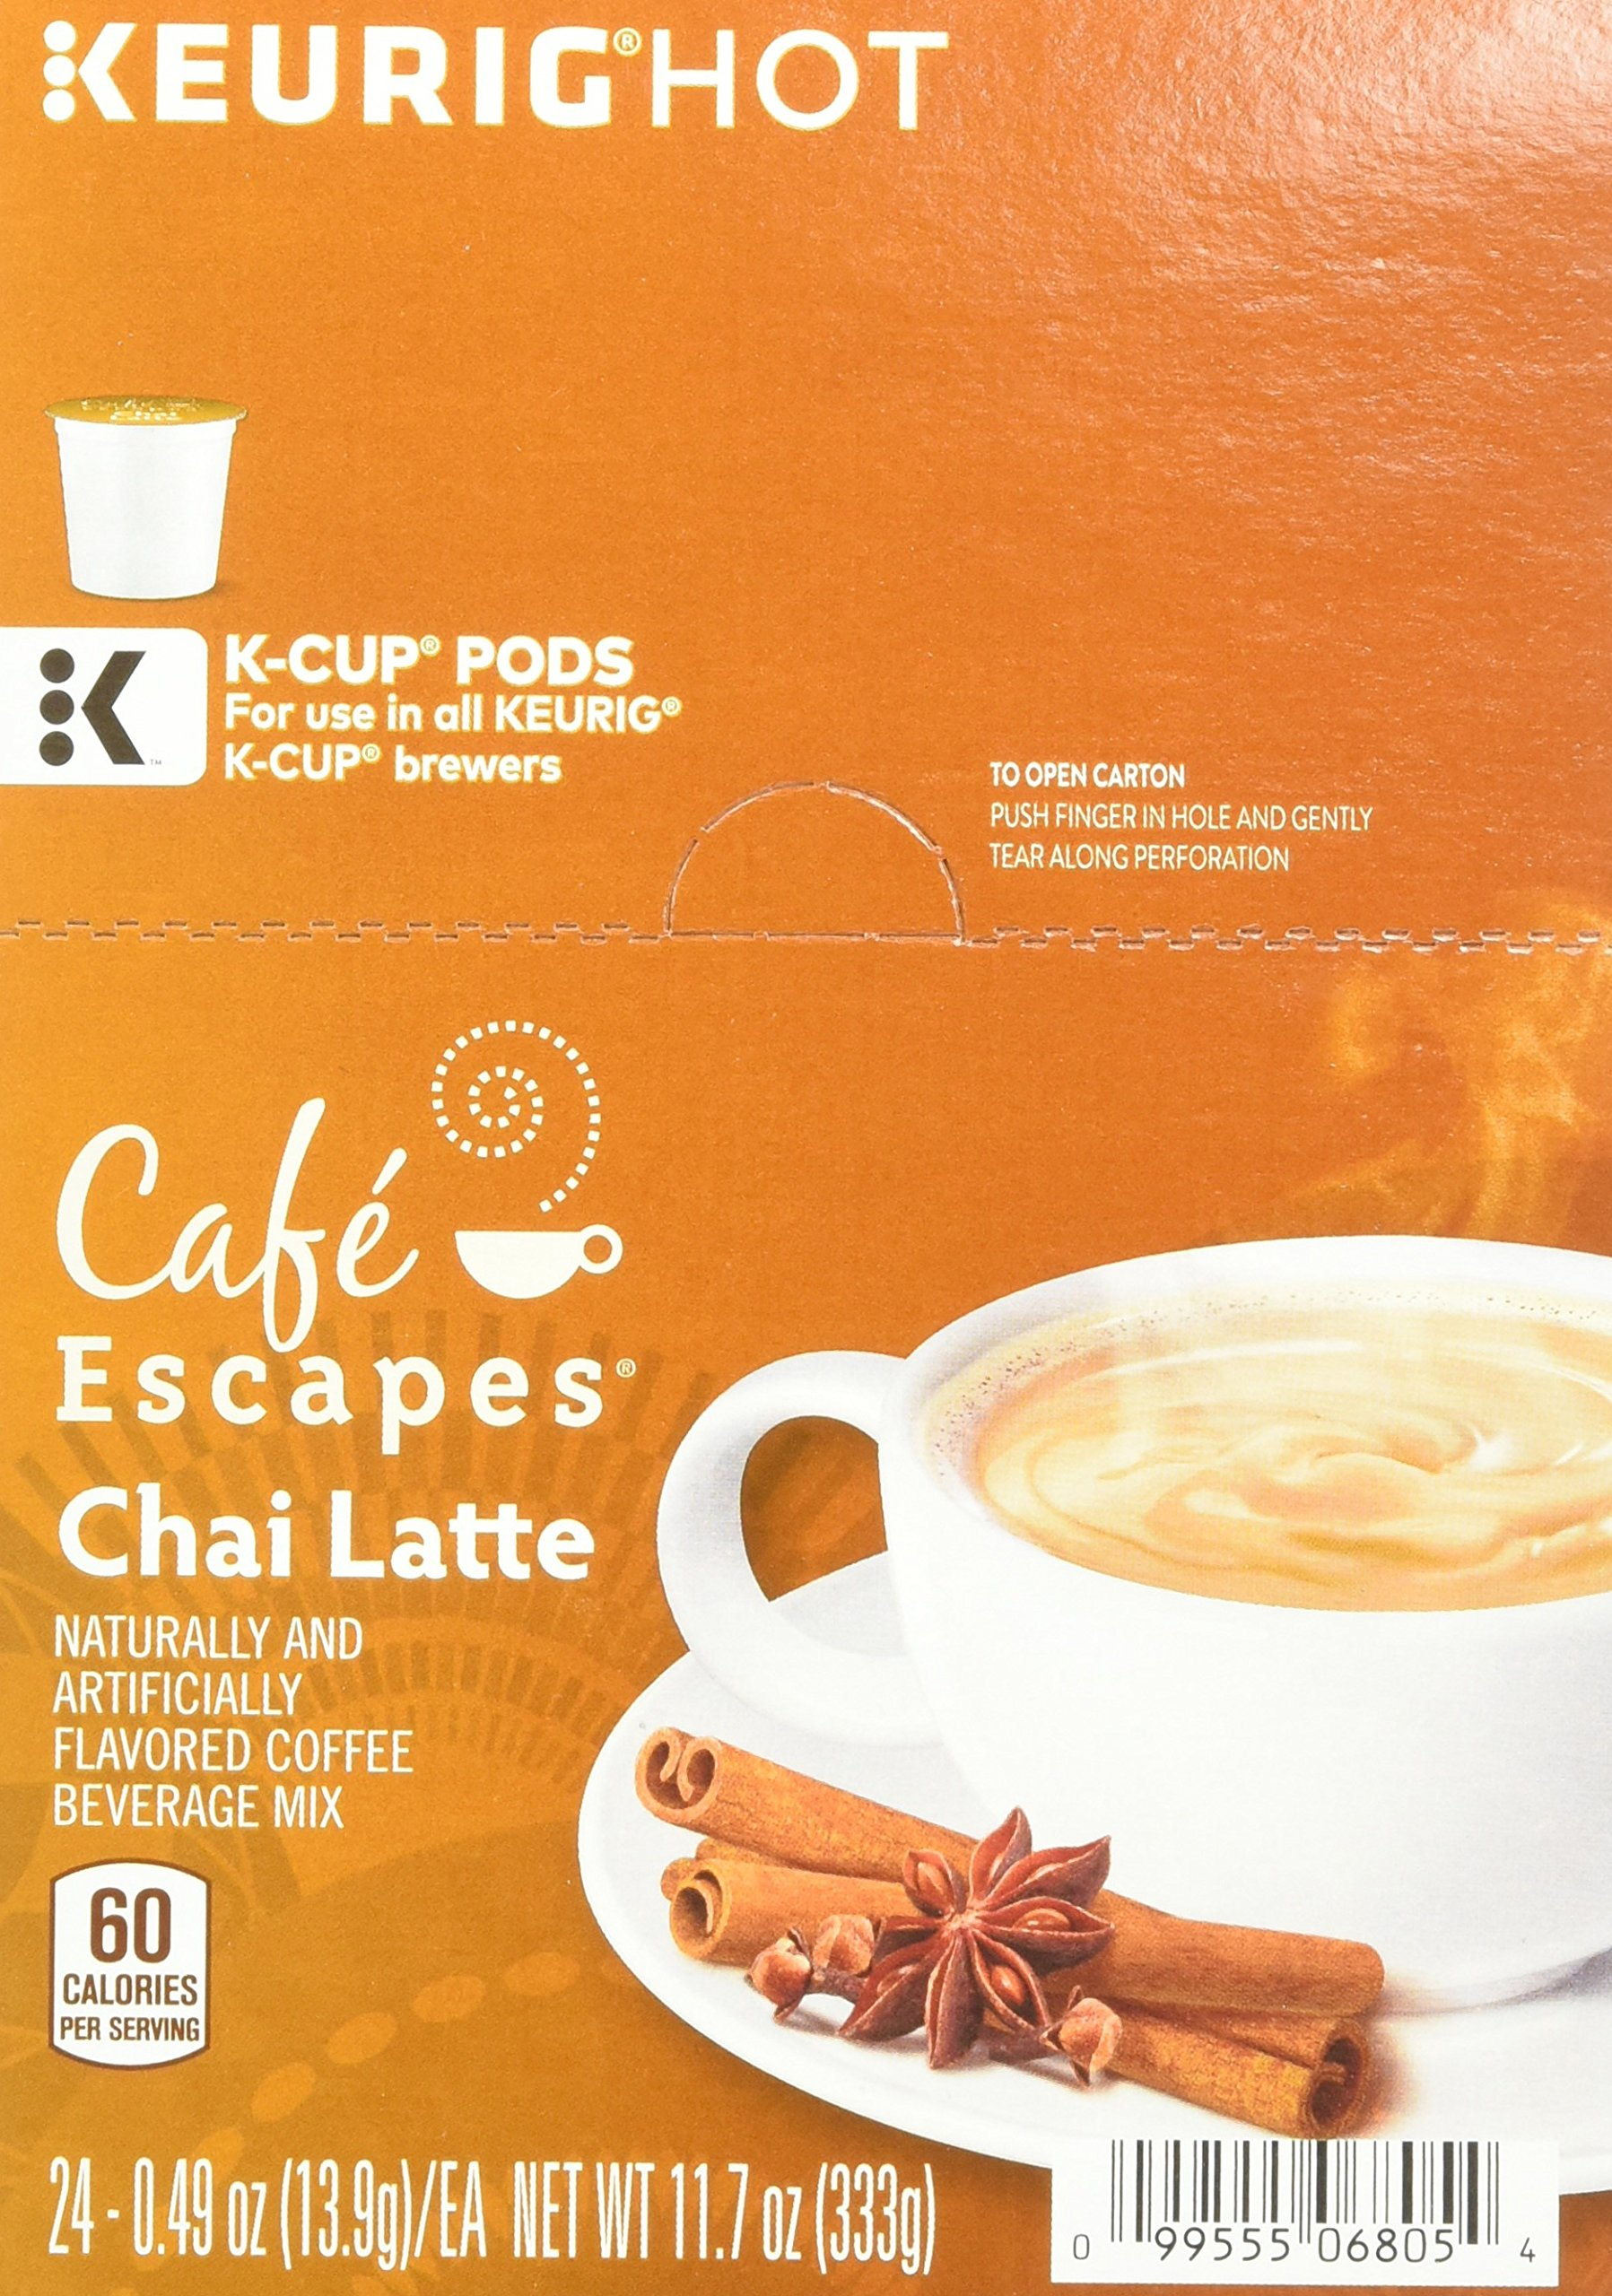 Cafe Escapes Chai Latte K-Cups, 11.7 oz, 96 Count by Café Escapes (Image #6)